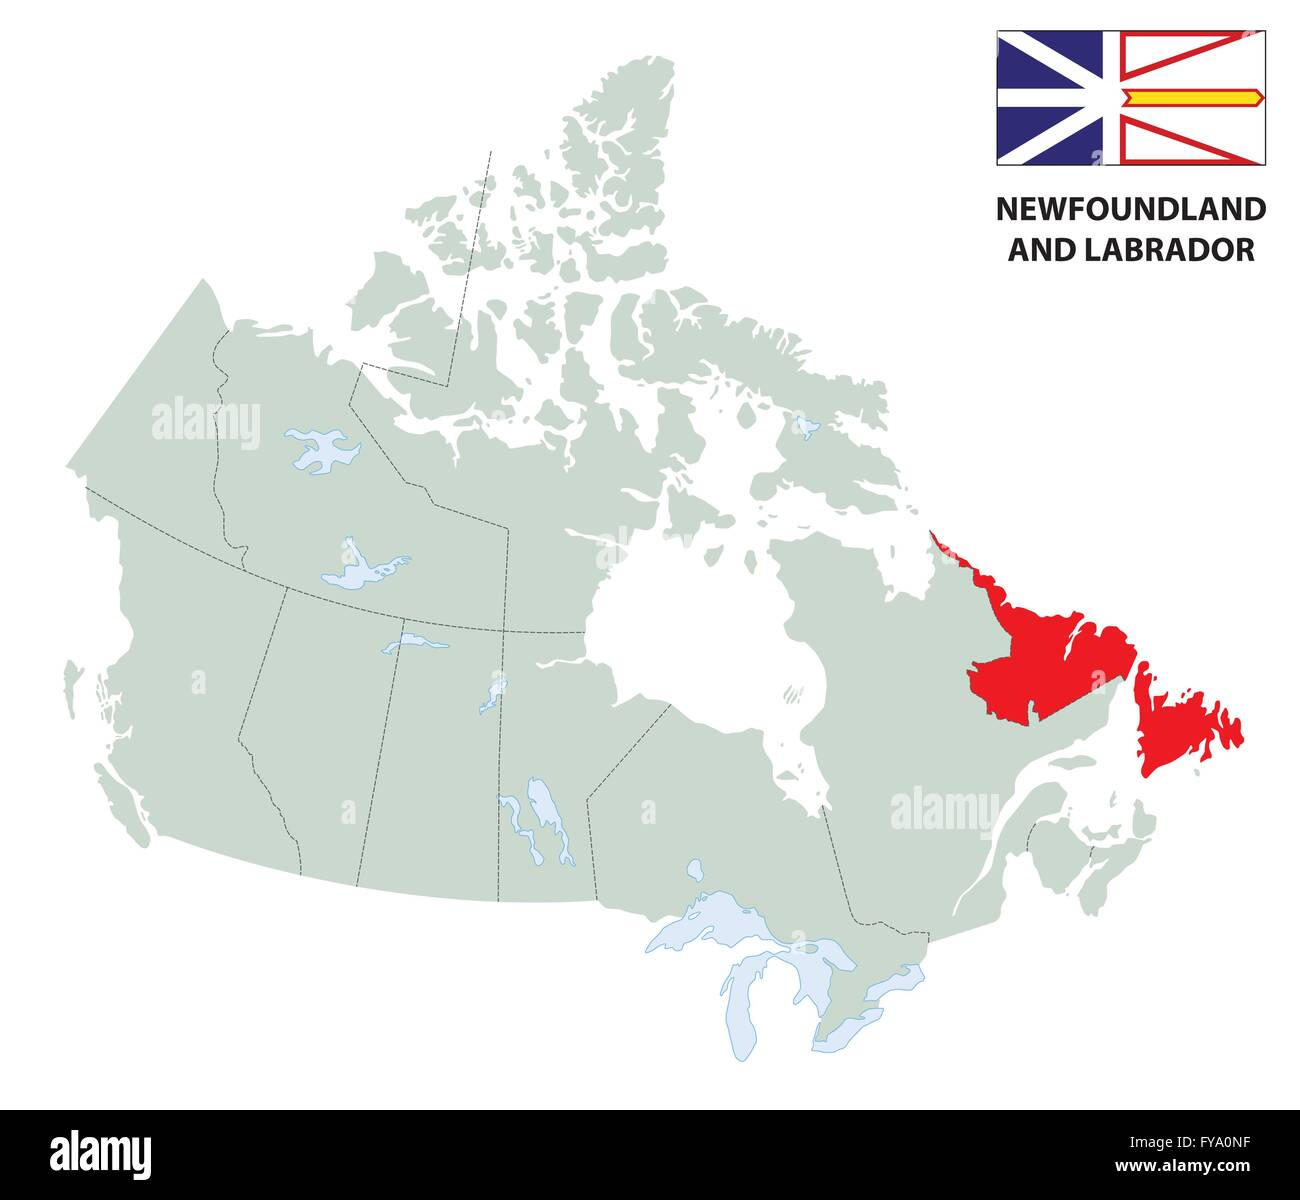 Outline map of the canadian province newfoundland and labrador outline map of the canadian province newfoundland and labrador with flag gumiabroncs Images